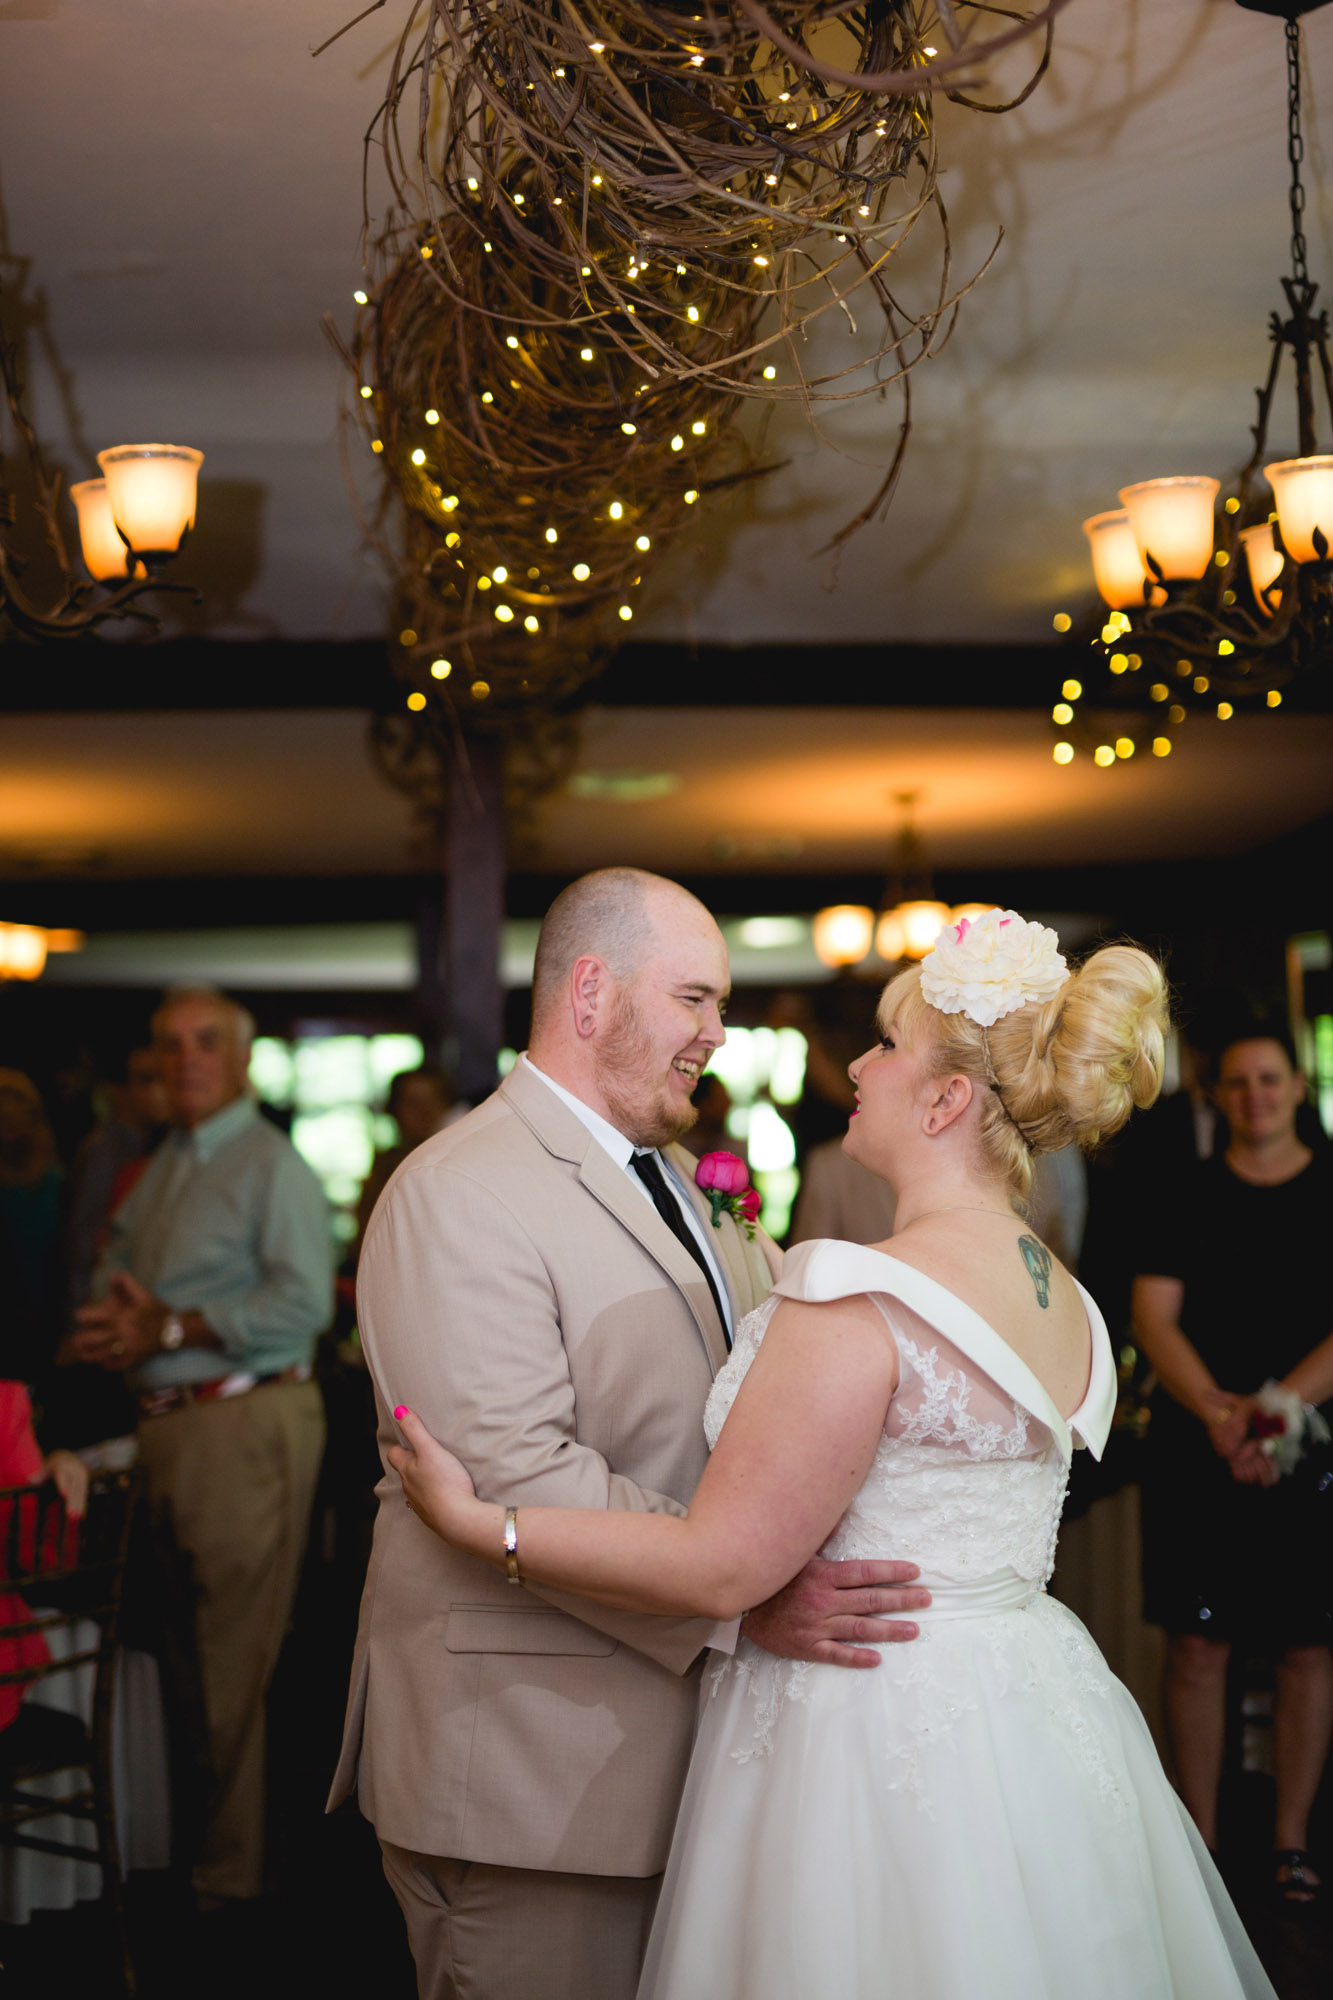 Caitlin & Joe's Stroudsmoor Woodsgate Wedding 79